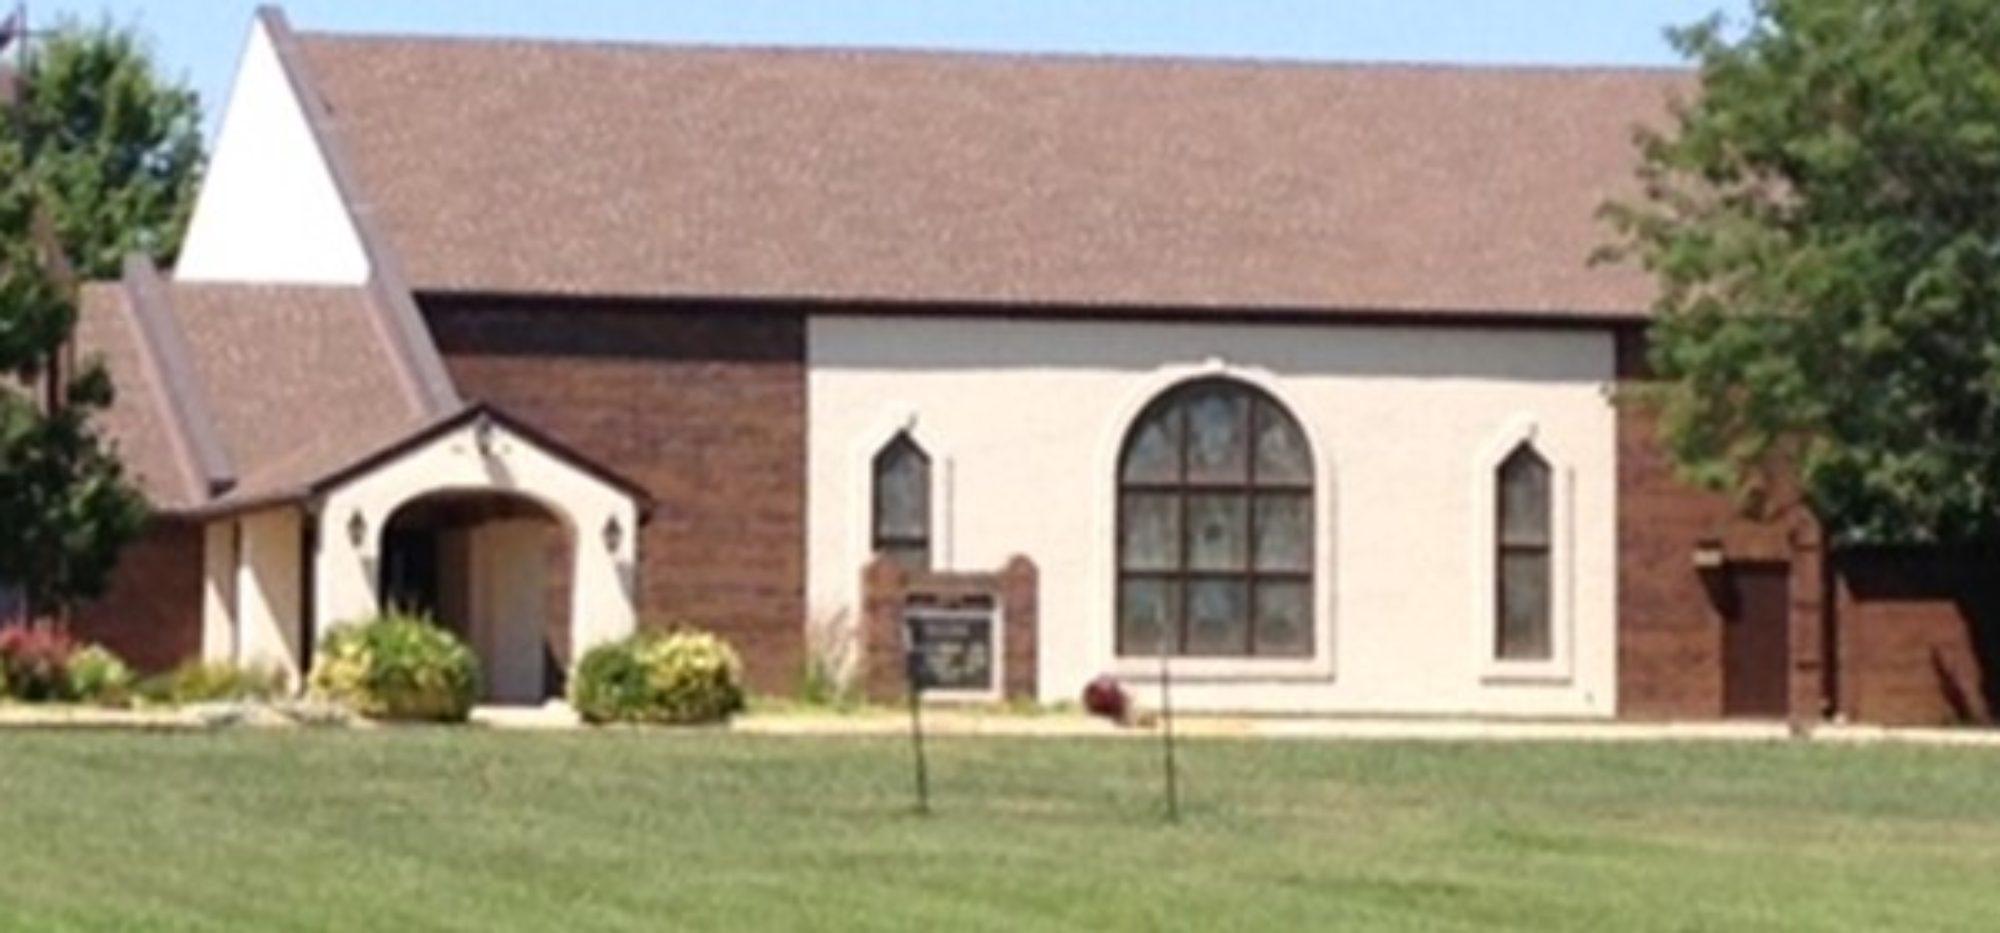 Overbrook United Methodist Church